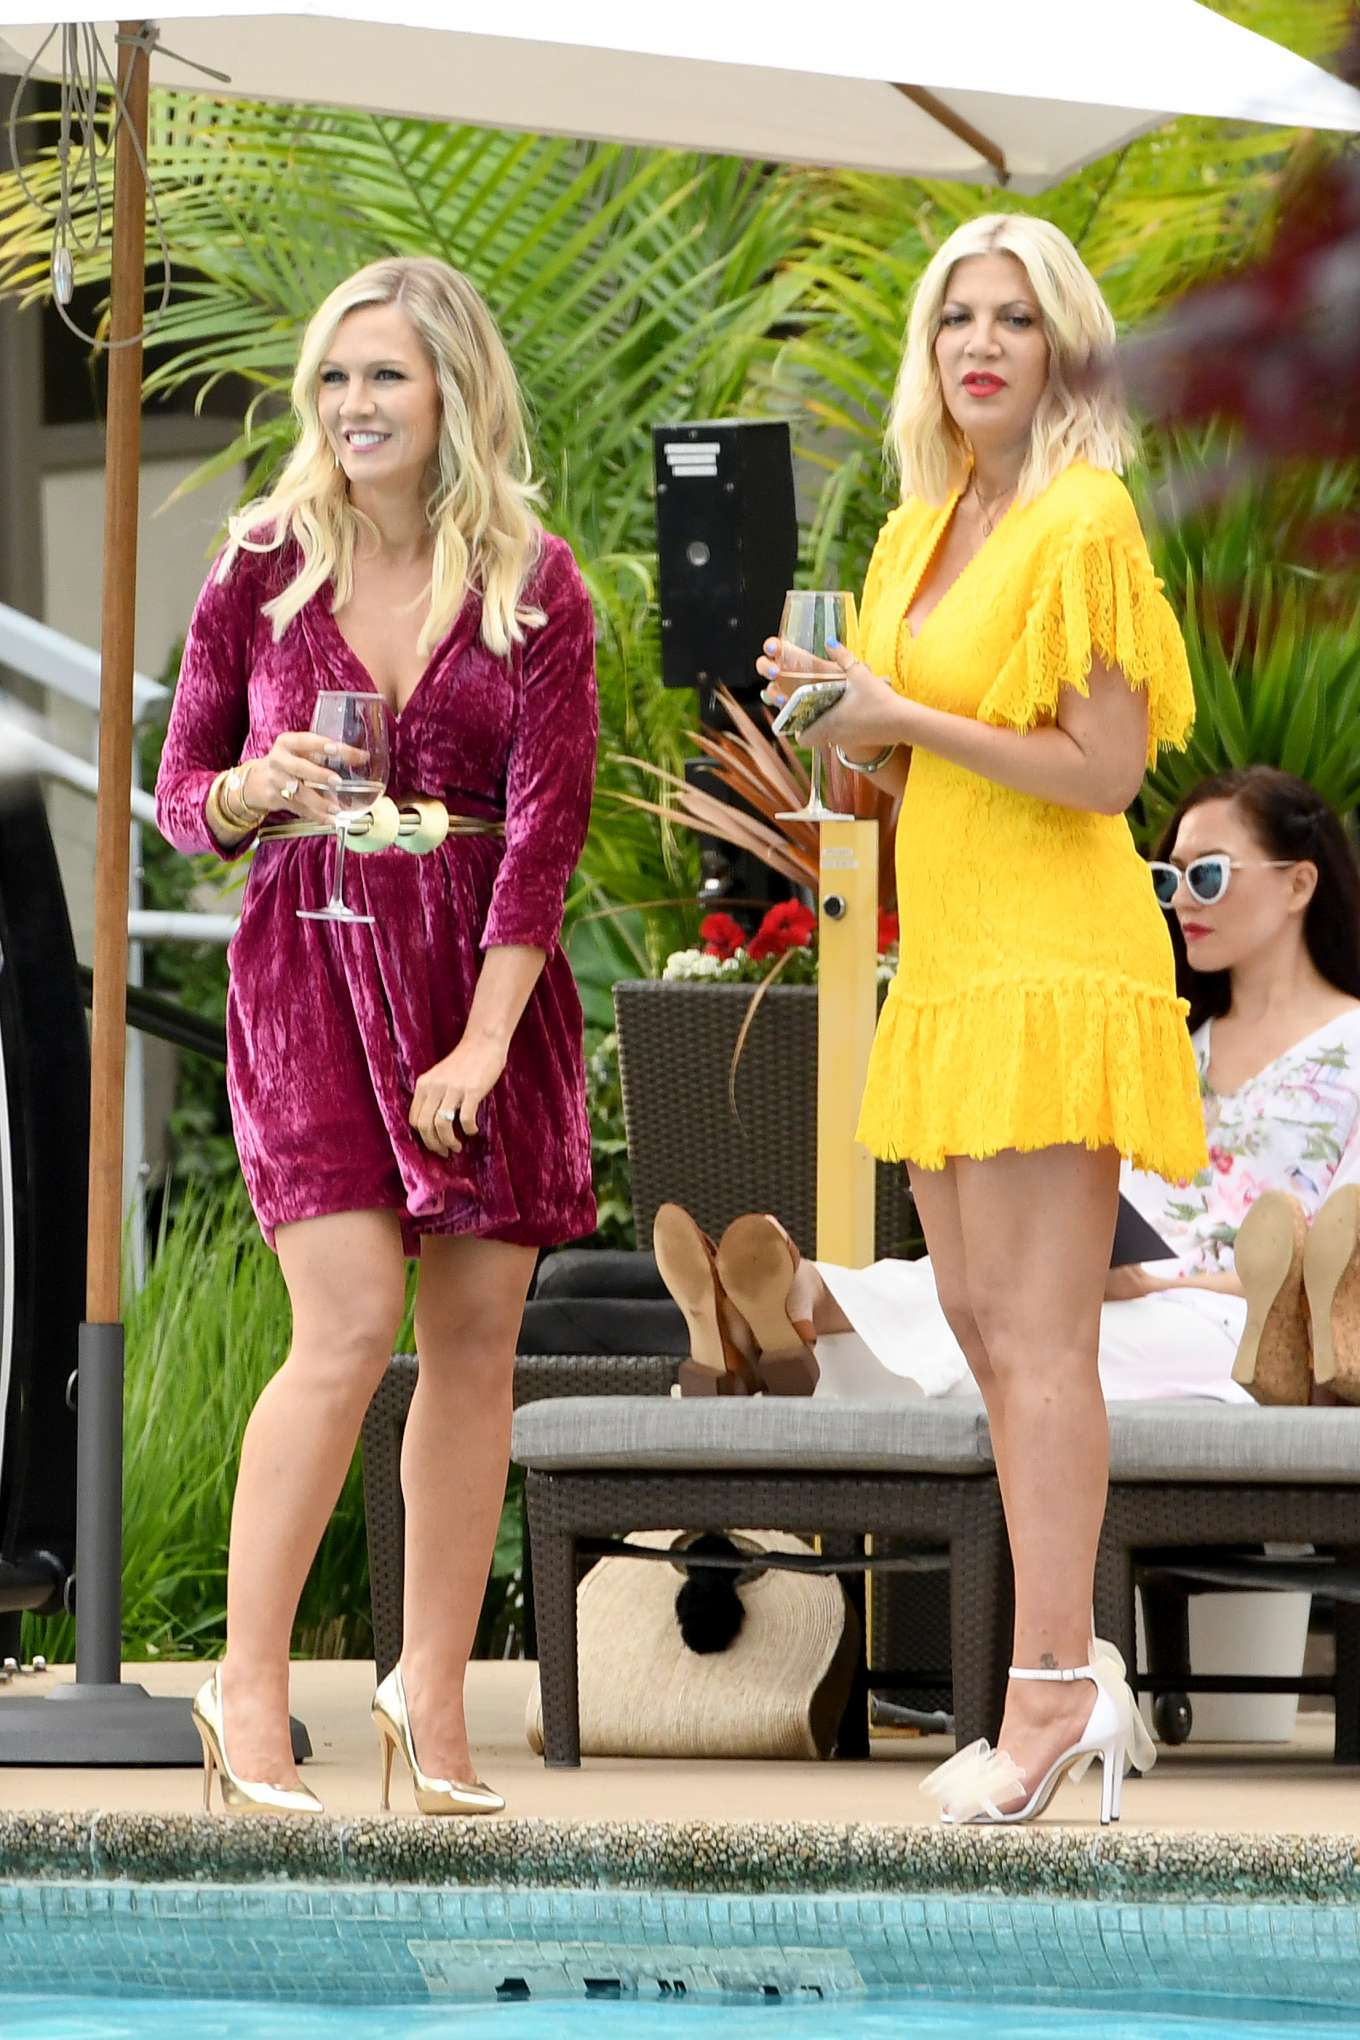 Tori Spelling 2019 : Tori Spelling and Jennie Garth: On the set of Beverly Hills 90210-03